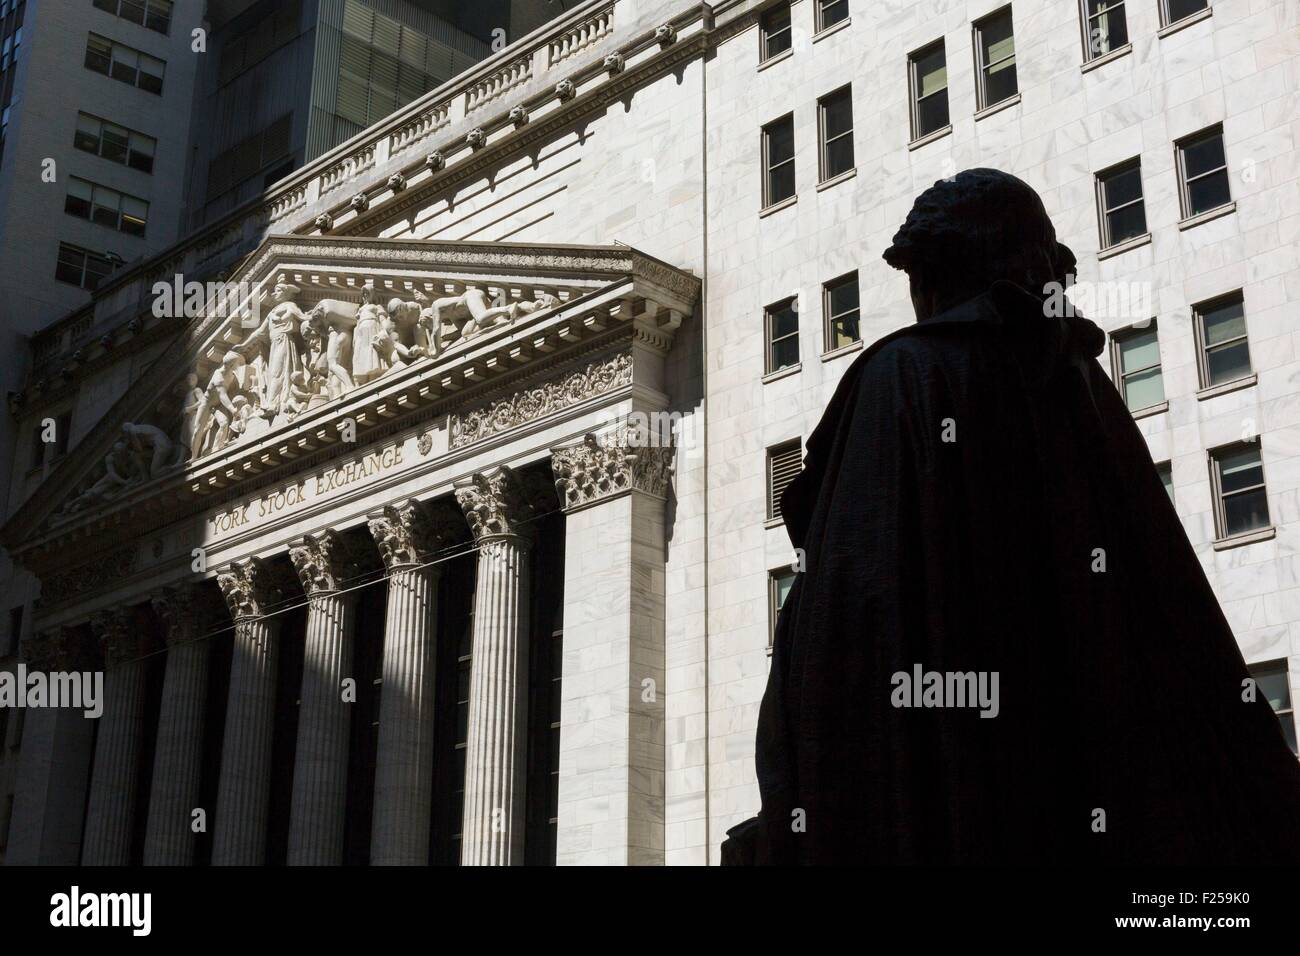 Vereinigte Staaten, New York, Manhattan, Financial District, Wall Street, dem Giebel der Börse, die Statue Stockbild